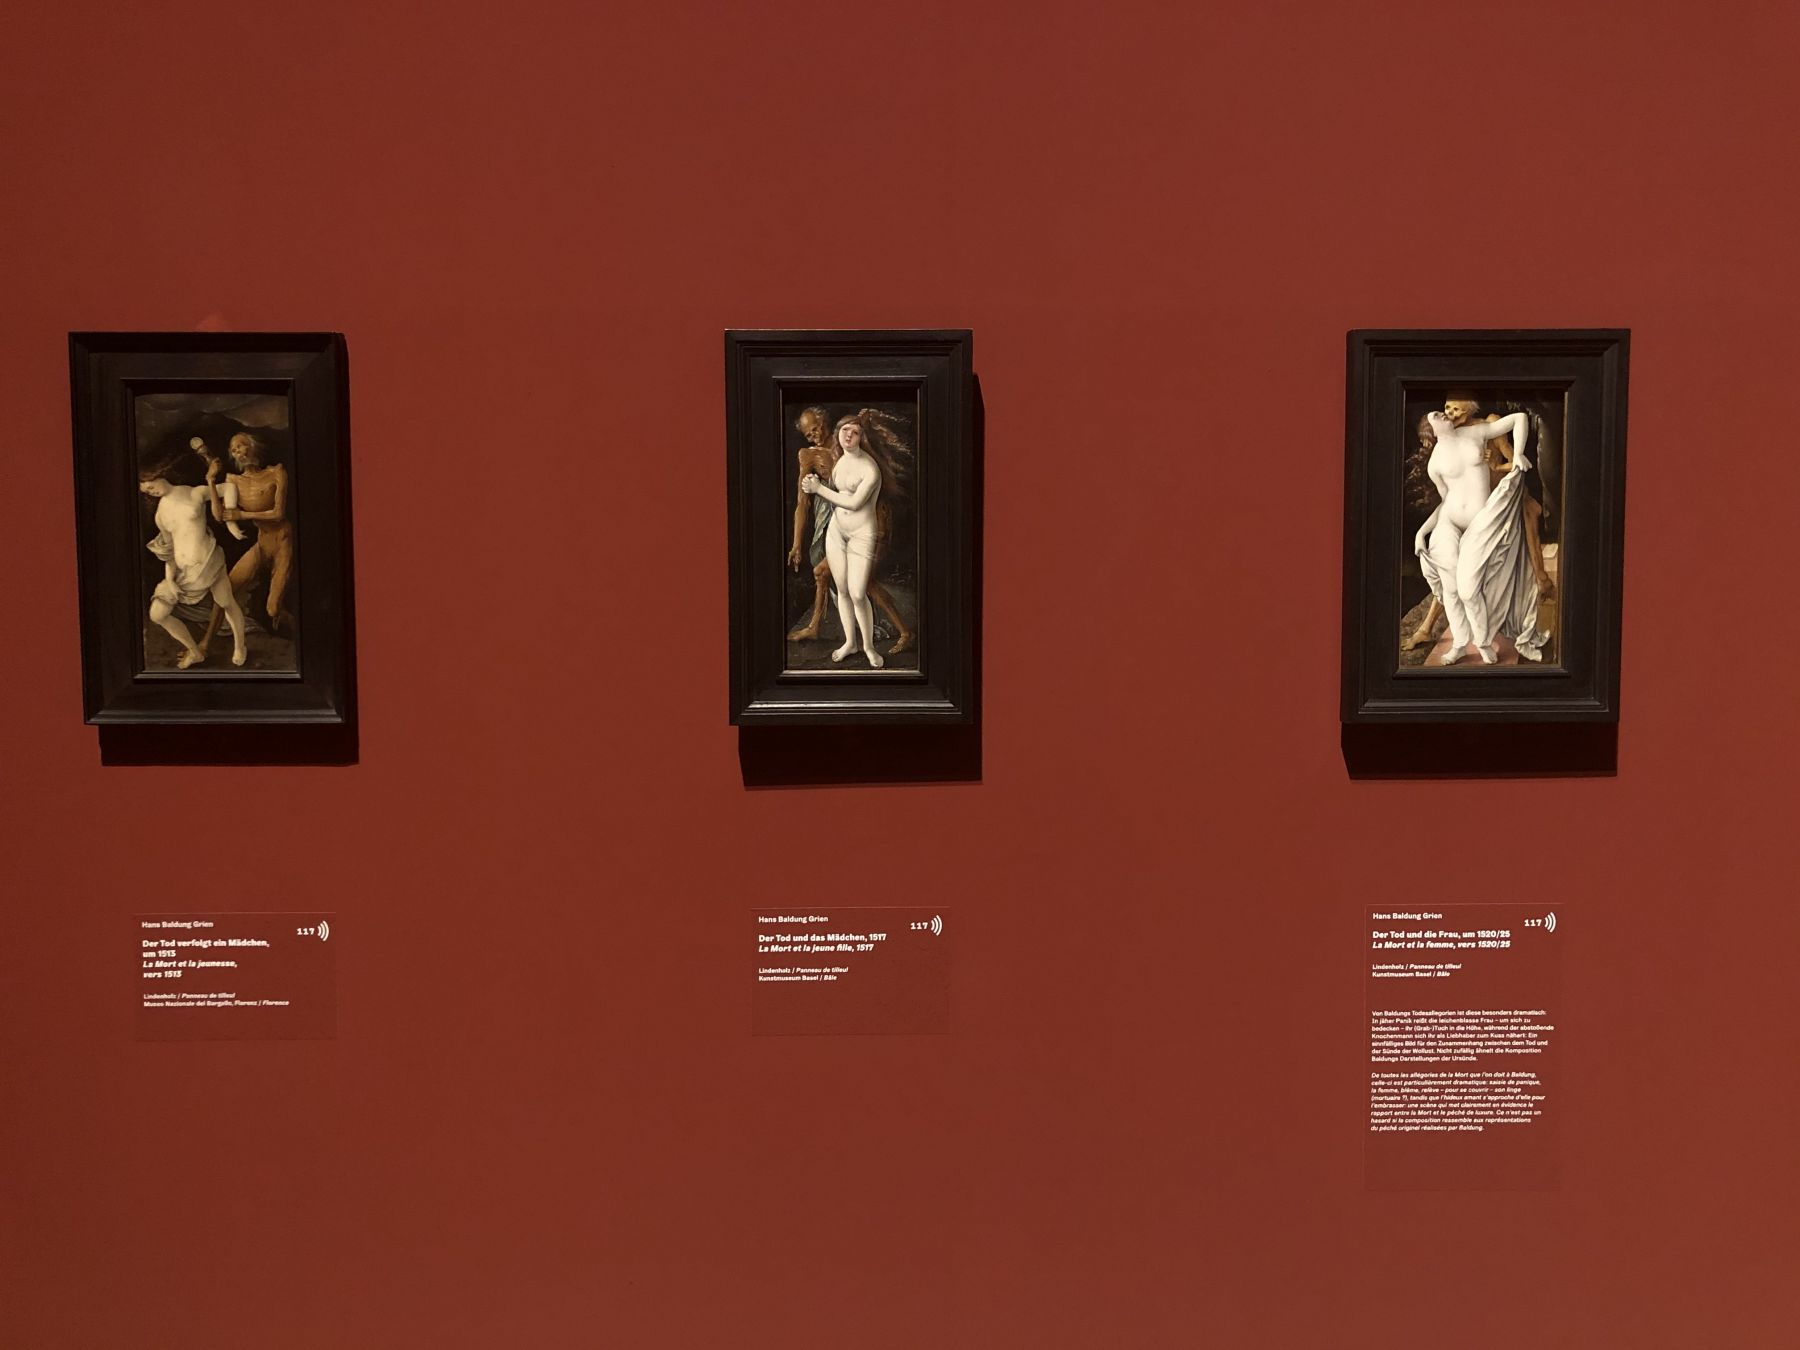 Hans Baldung Grien, Death and the Maiden/ Left: oil on panel, 1513, 30 x 16cm, Museo Nazionale del Bargello, Florence/ Center: oil on panel, 1517, 30 x 15cm, Kunstmuseum Basel, Basel/ Right: oil on panel, ca. 1520-25, 30 x 17cm, Kunstmuseum Basel, Basel